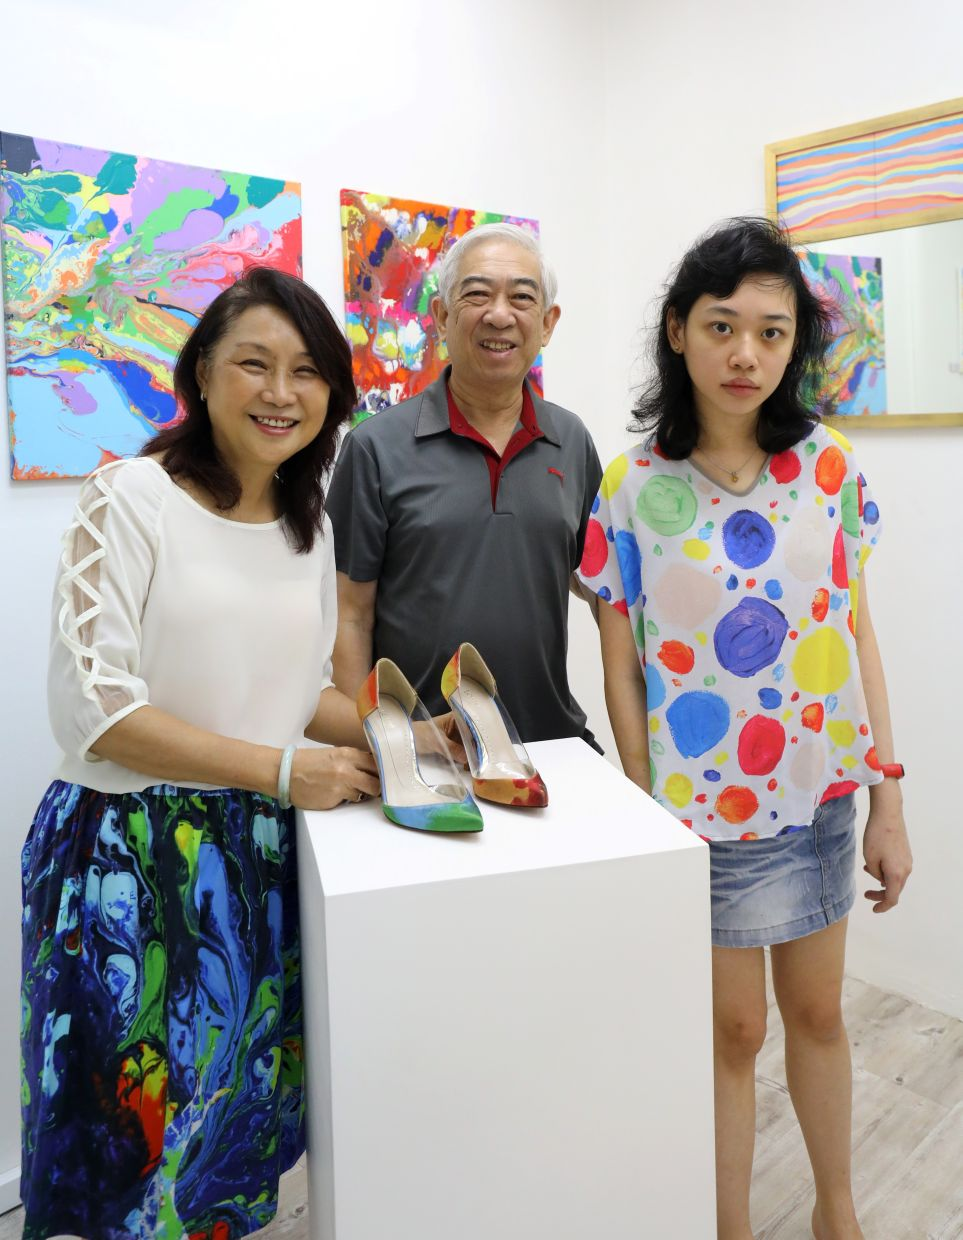 Janet Lee (right), pictured with her parents at the gallery. Photo: The Star/Samuel Ong